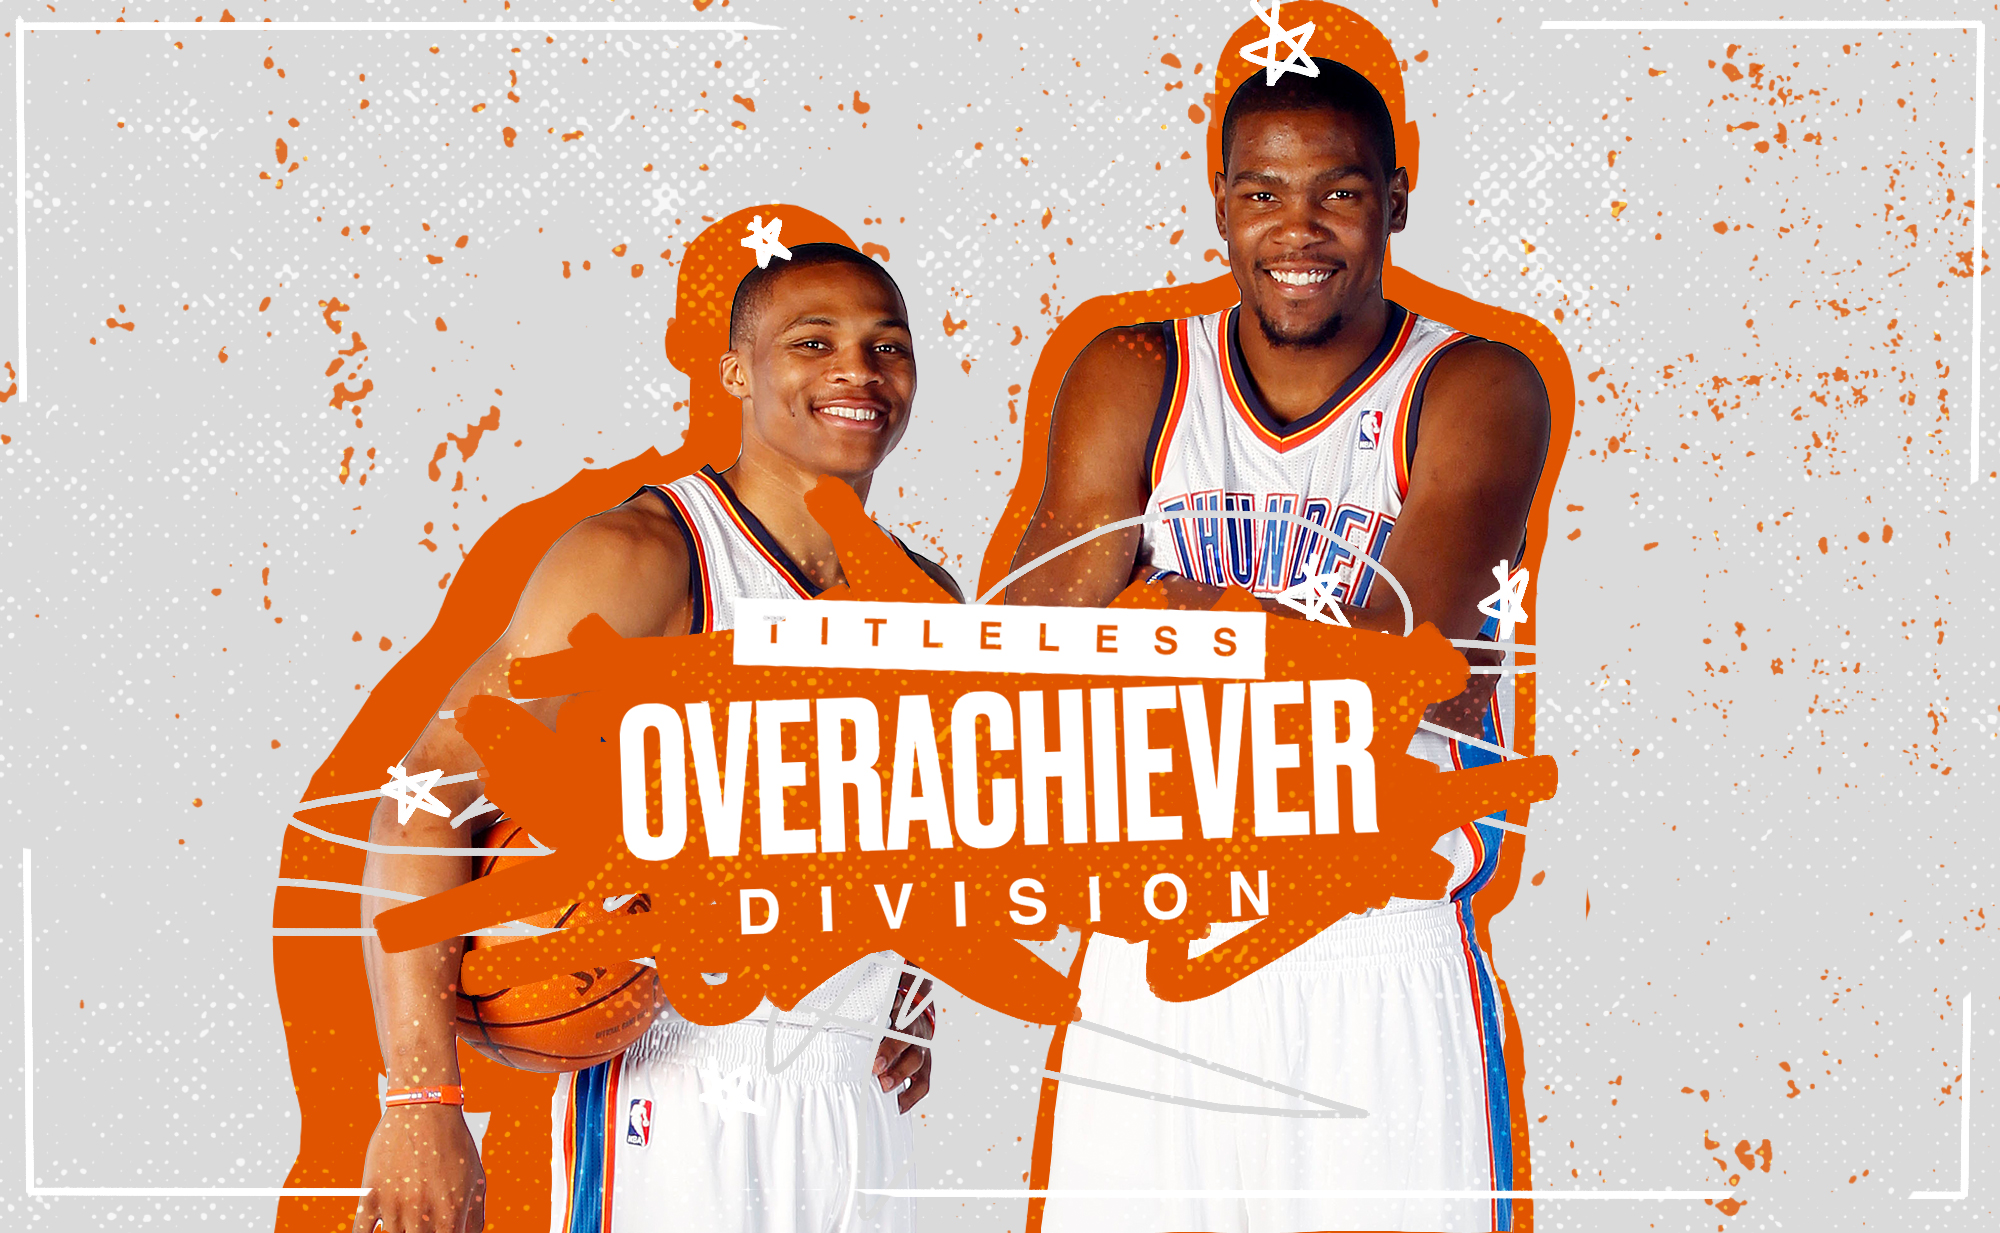 Russell Westbrook and Kevin Durant on the Thunder.